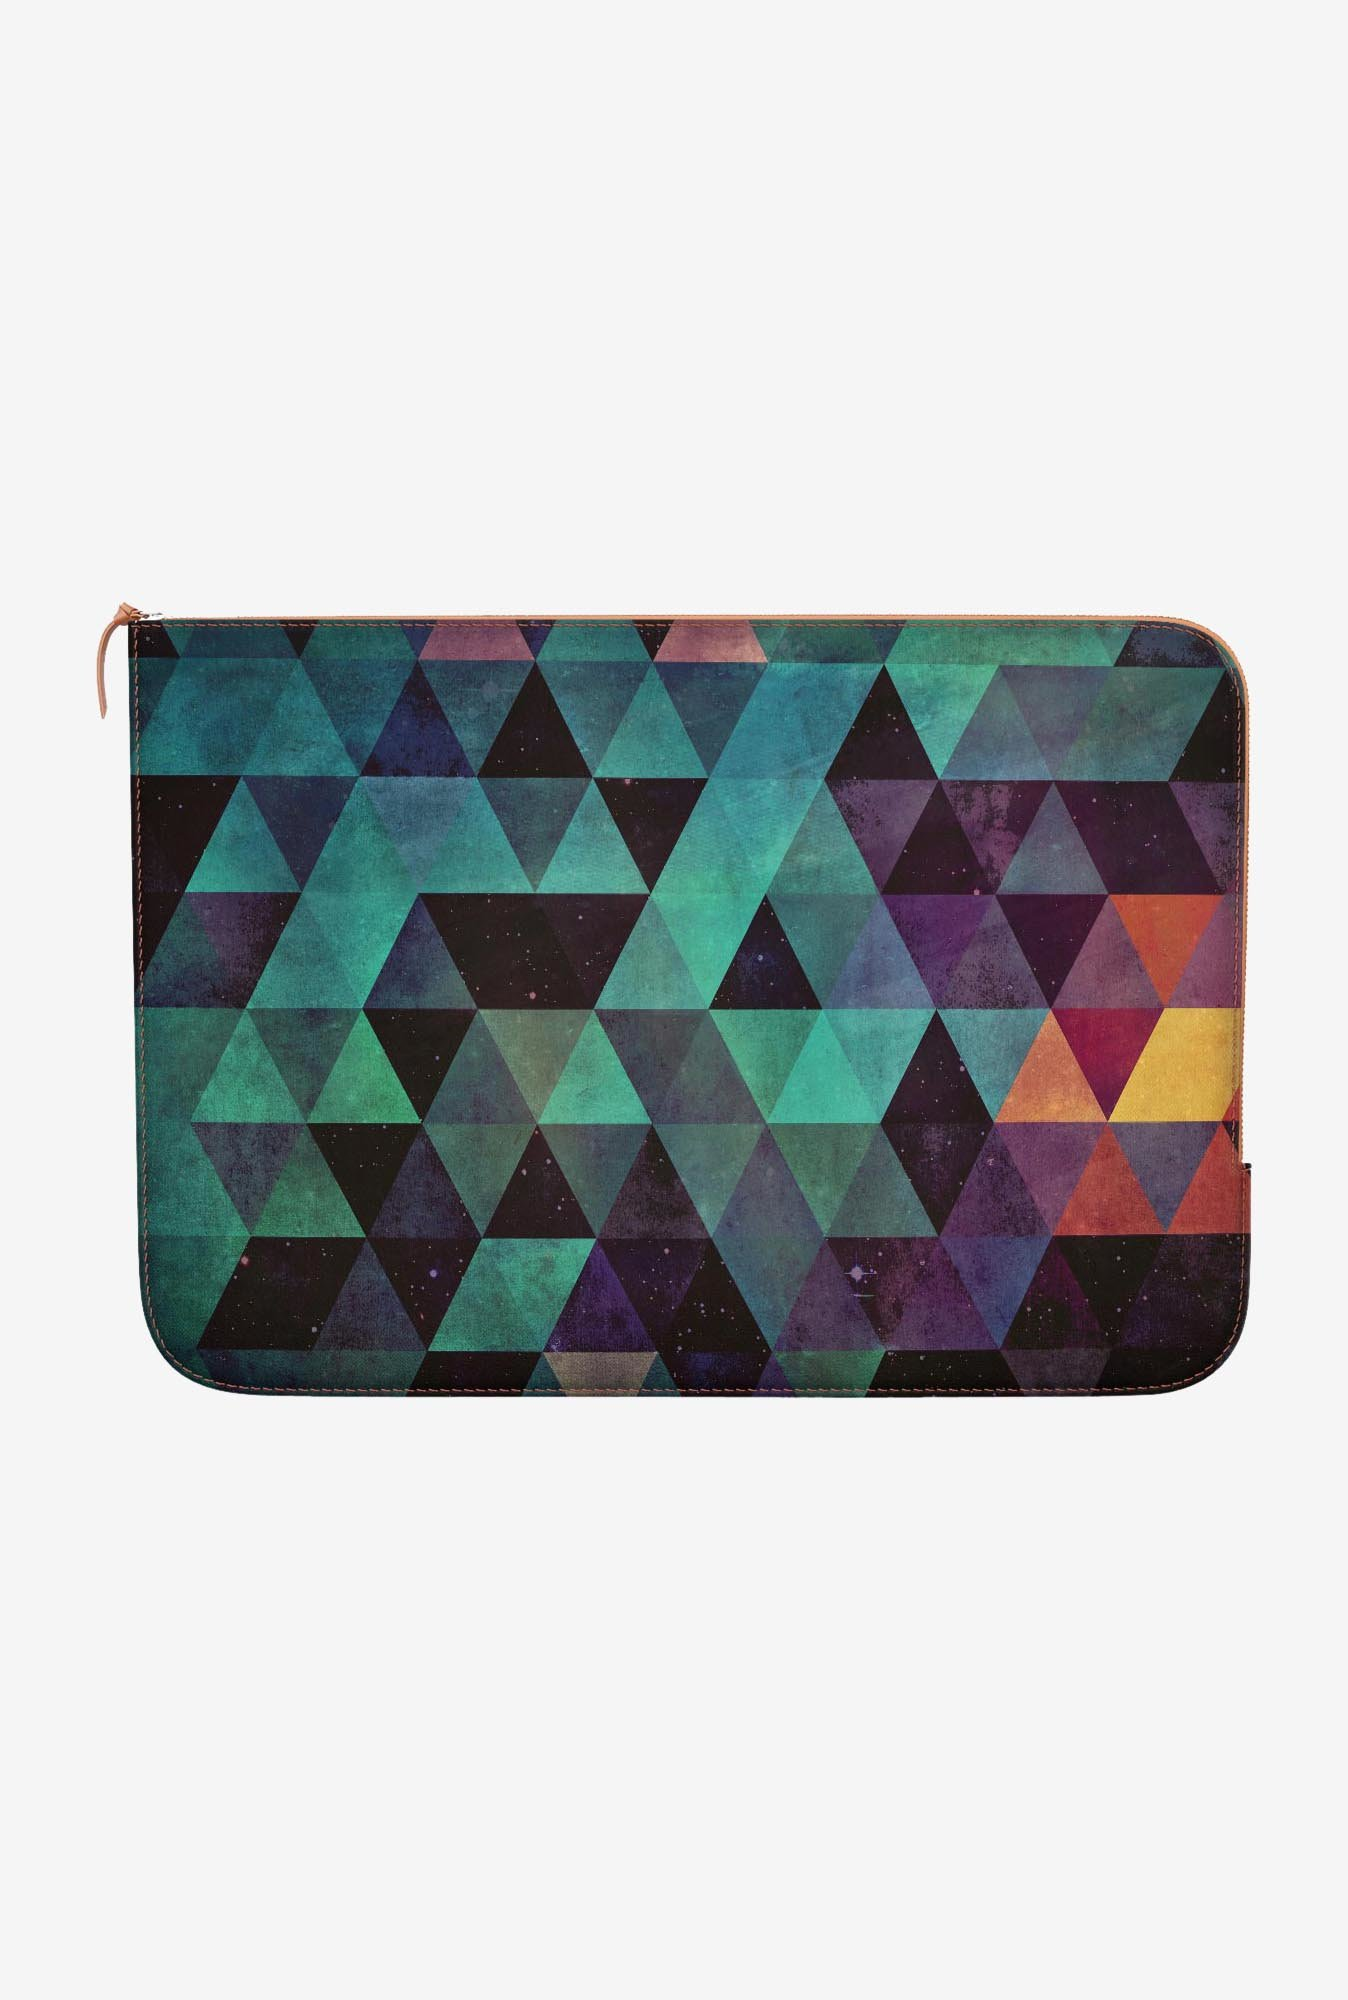 "DailyObjects Dyyp Tyyl Hrxtl Macbook Pro 13"" Zippered Sleeve"